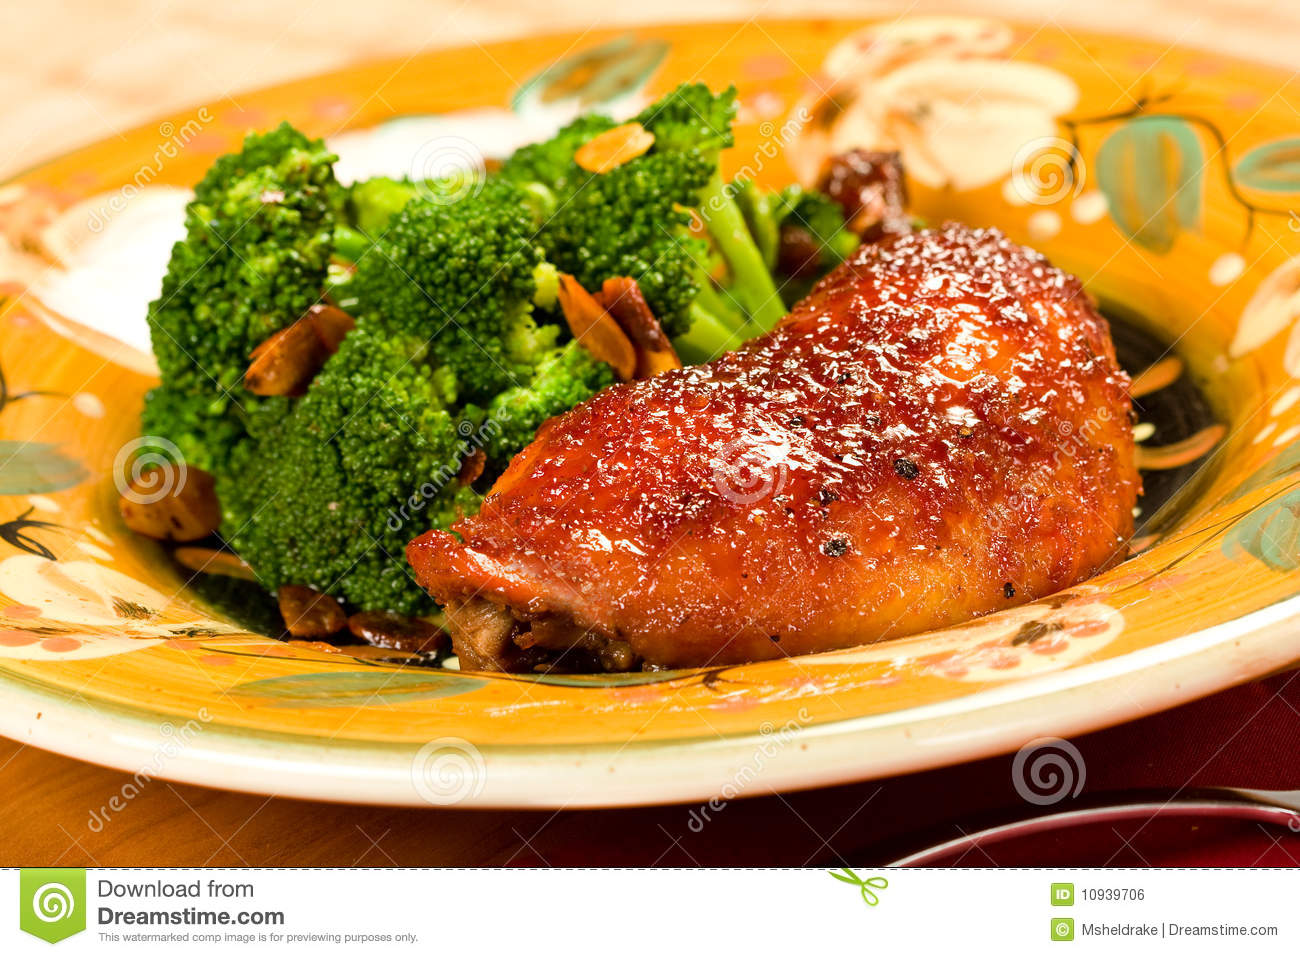 Orange Glazed Chicken Royalty Free Stock Image - Image: 10939706